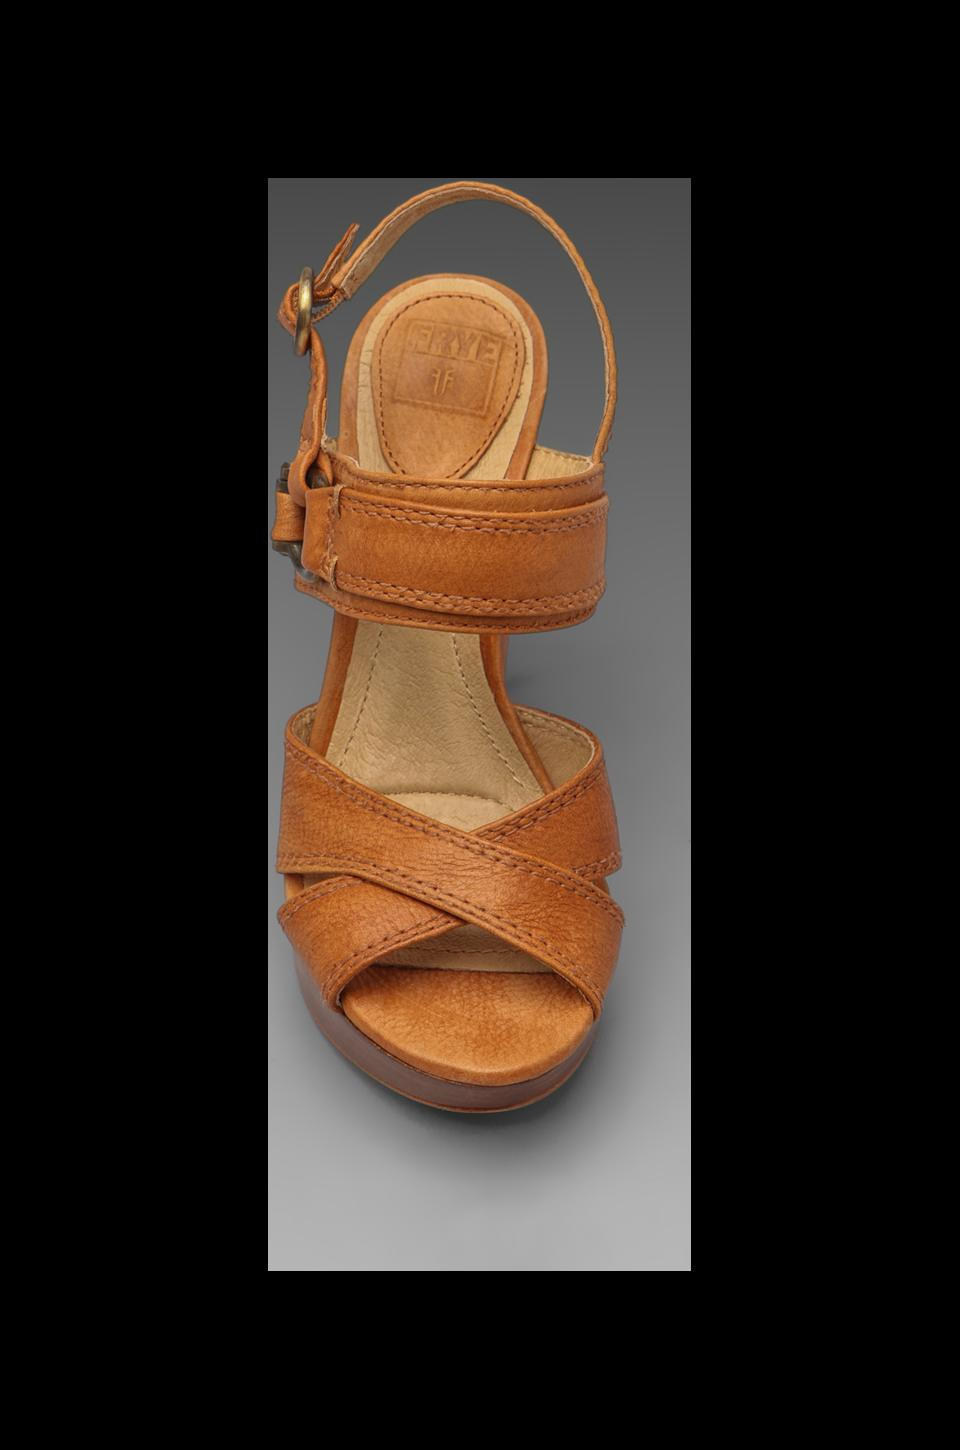 Frye Hannah Alexa Criss Cross Wedge in Natural